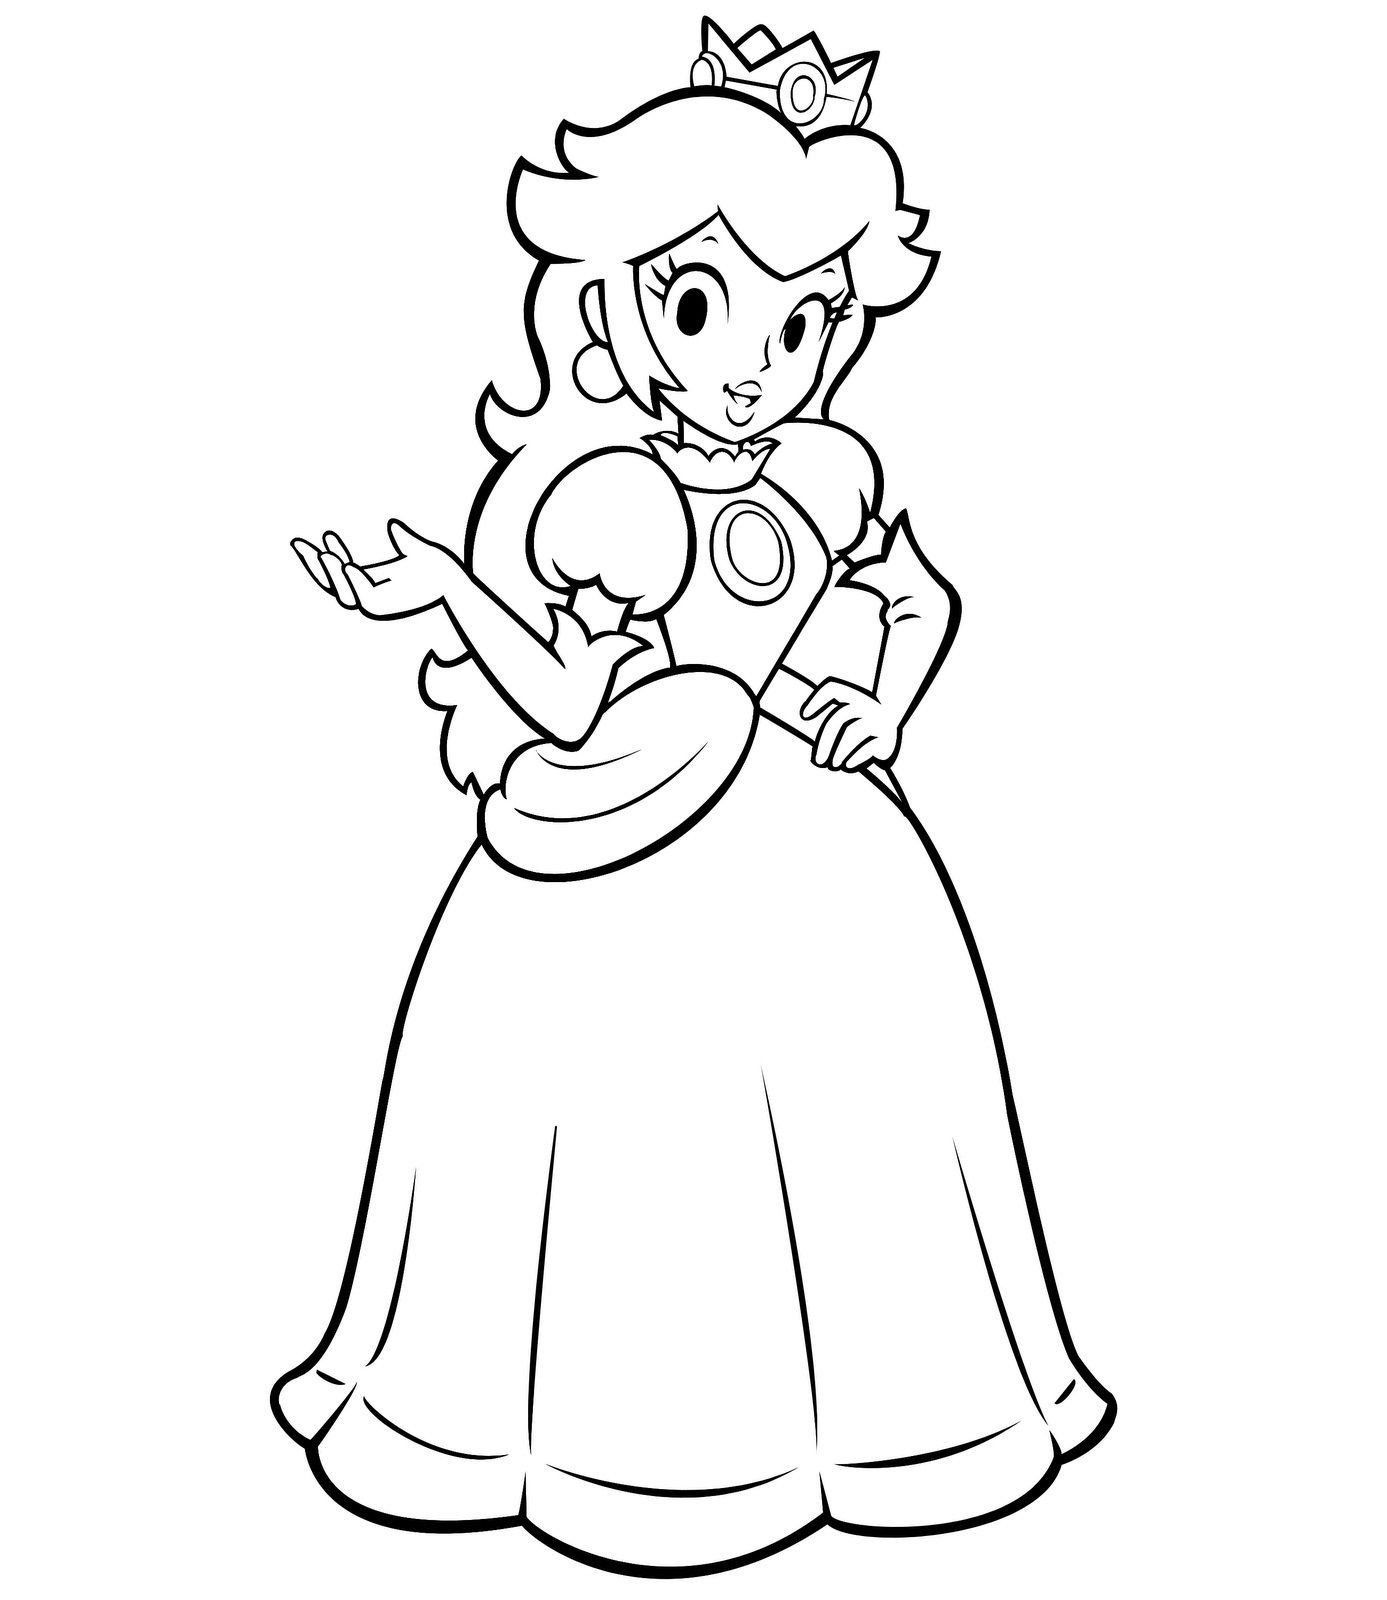 Super Mario Coloring Pages New Beautiful Super Mario Princess Daisy Coloring Pages In 2020 Elsa Coloring Pages Super Mario Coloring Pages Mario Coloring Pages